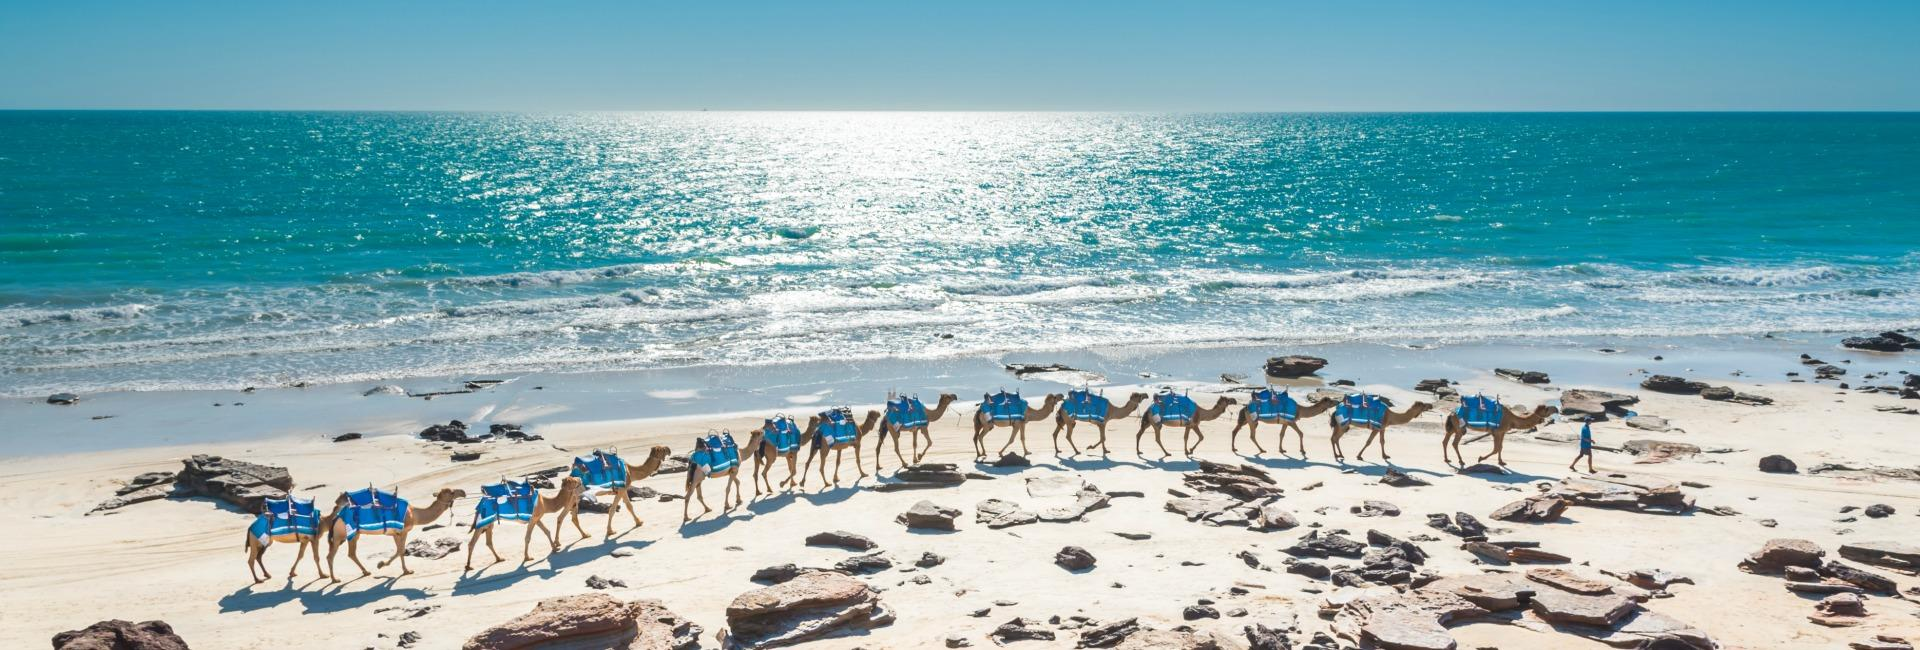 Broome: Your Travel Guide | Australia's North West